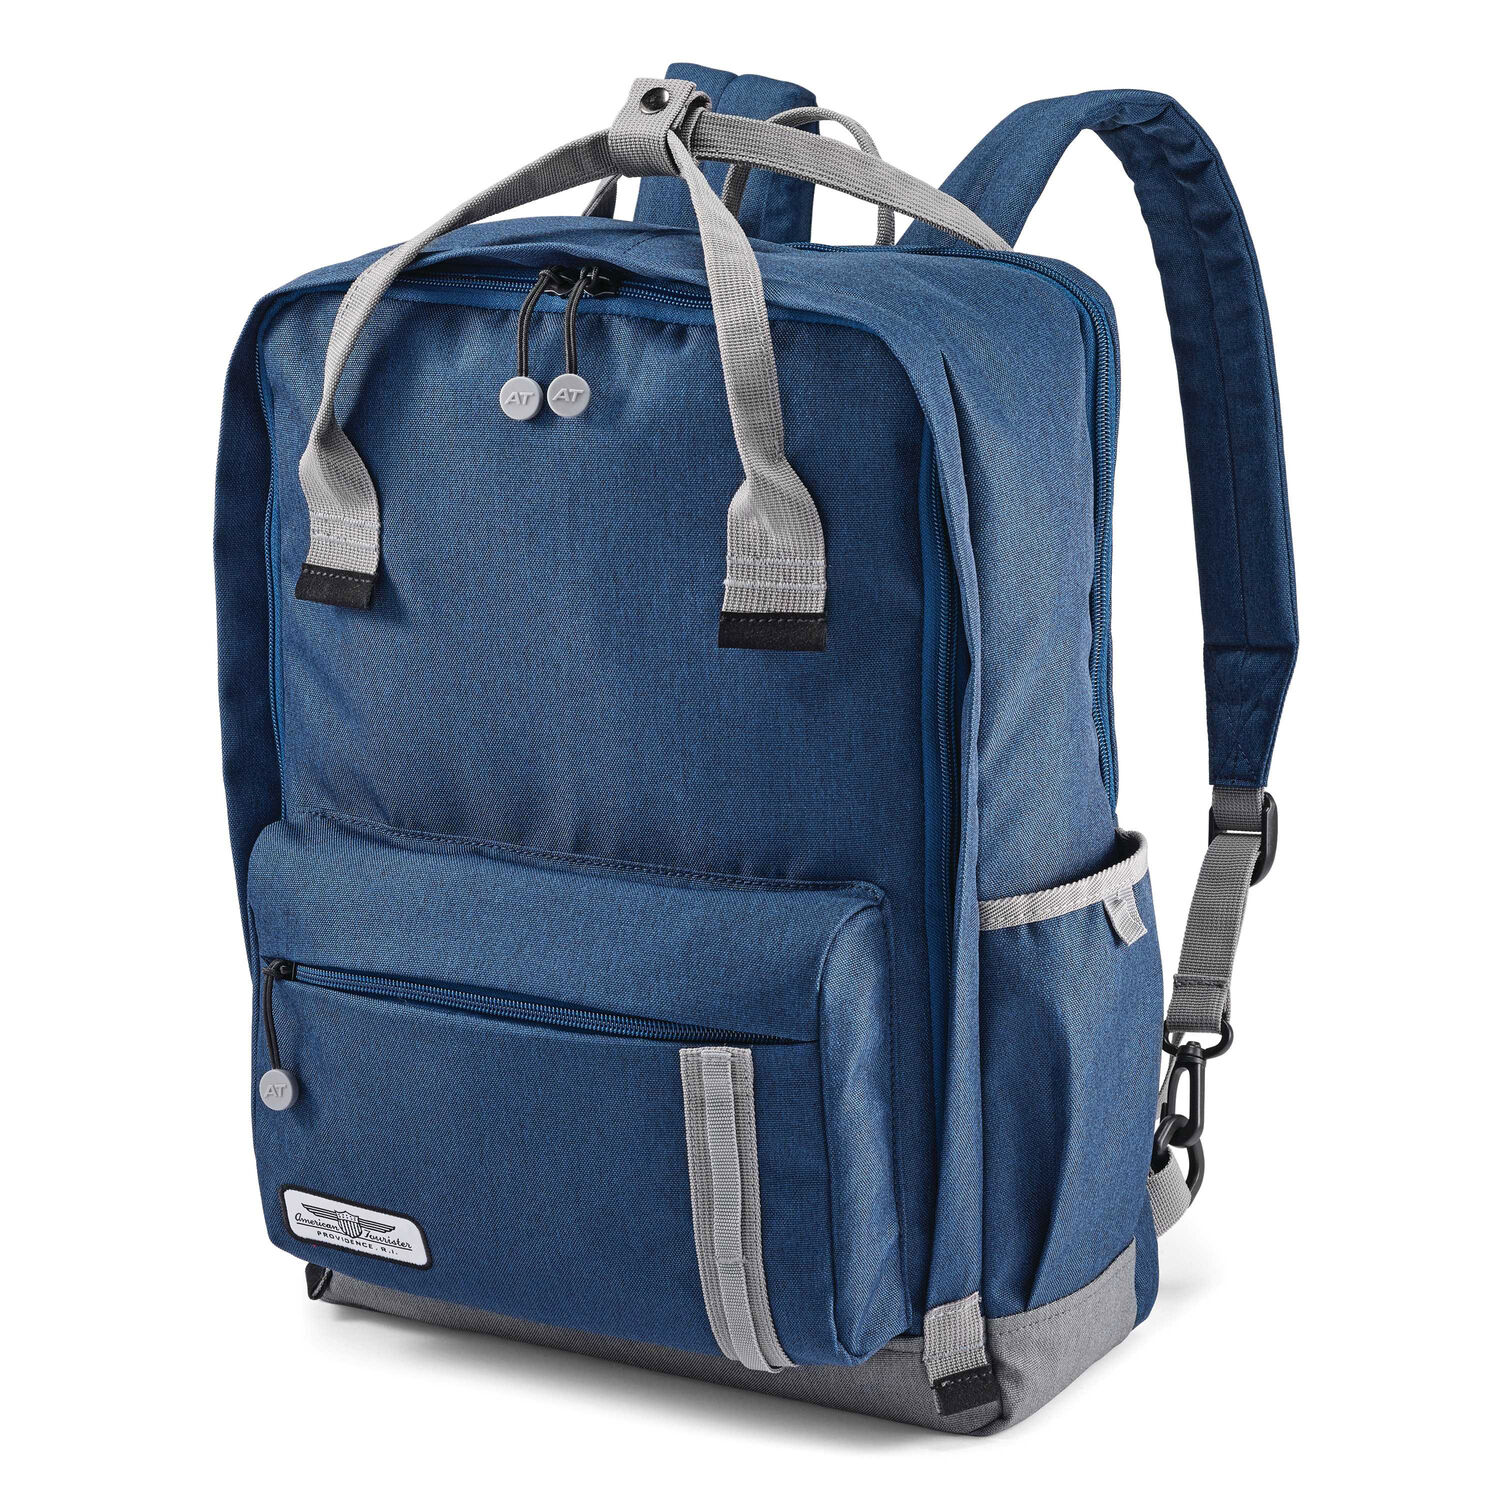 2b7f7065f6 American Tourister Cooper Backpack in the color Navy Grey.